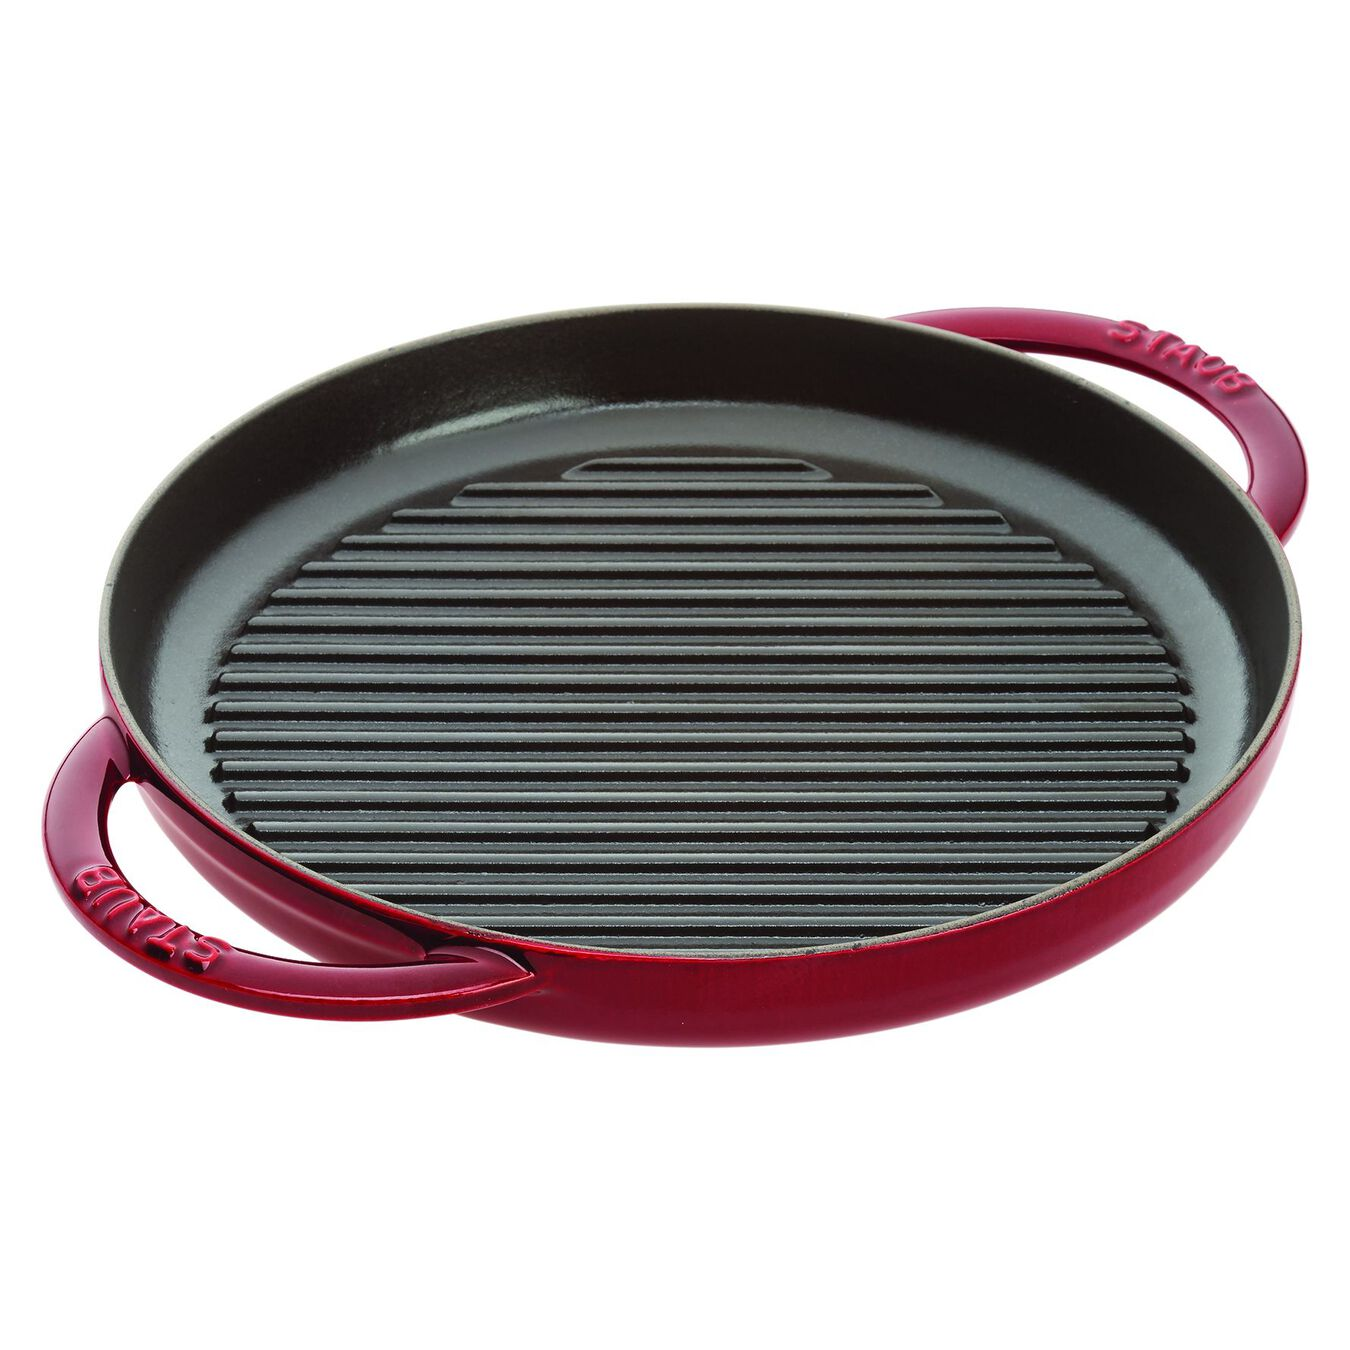 10-inch, Round Double Handle Pure Grill, grenadine,,large 1